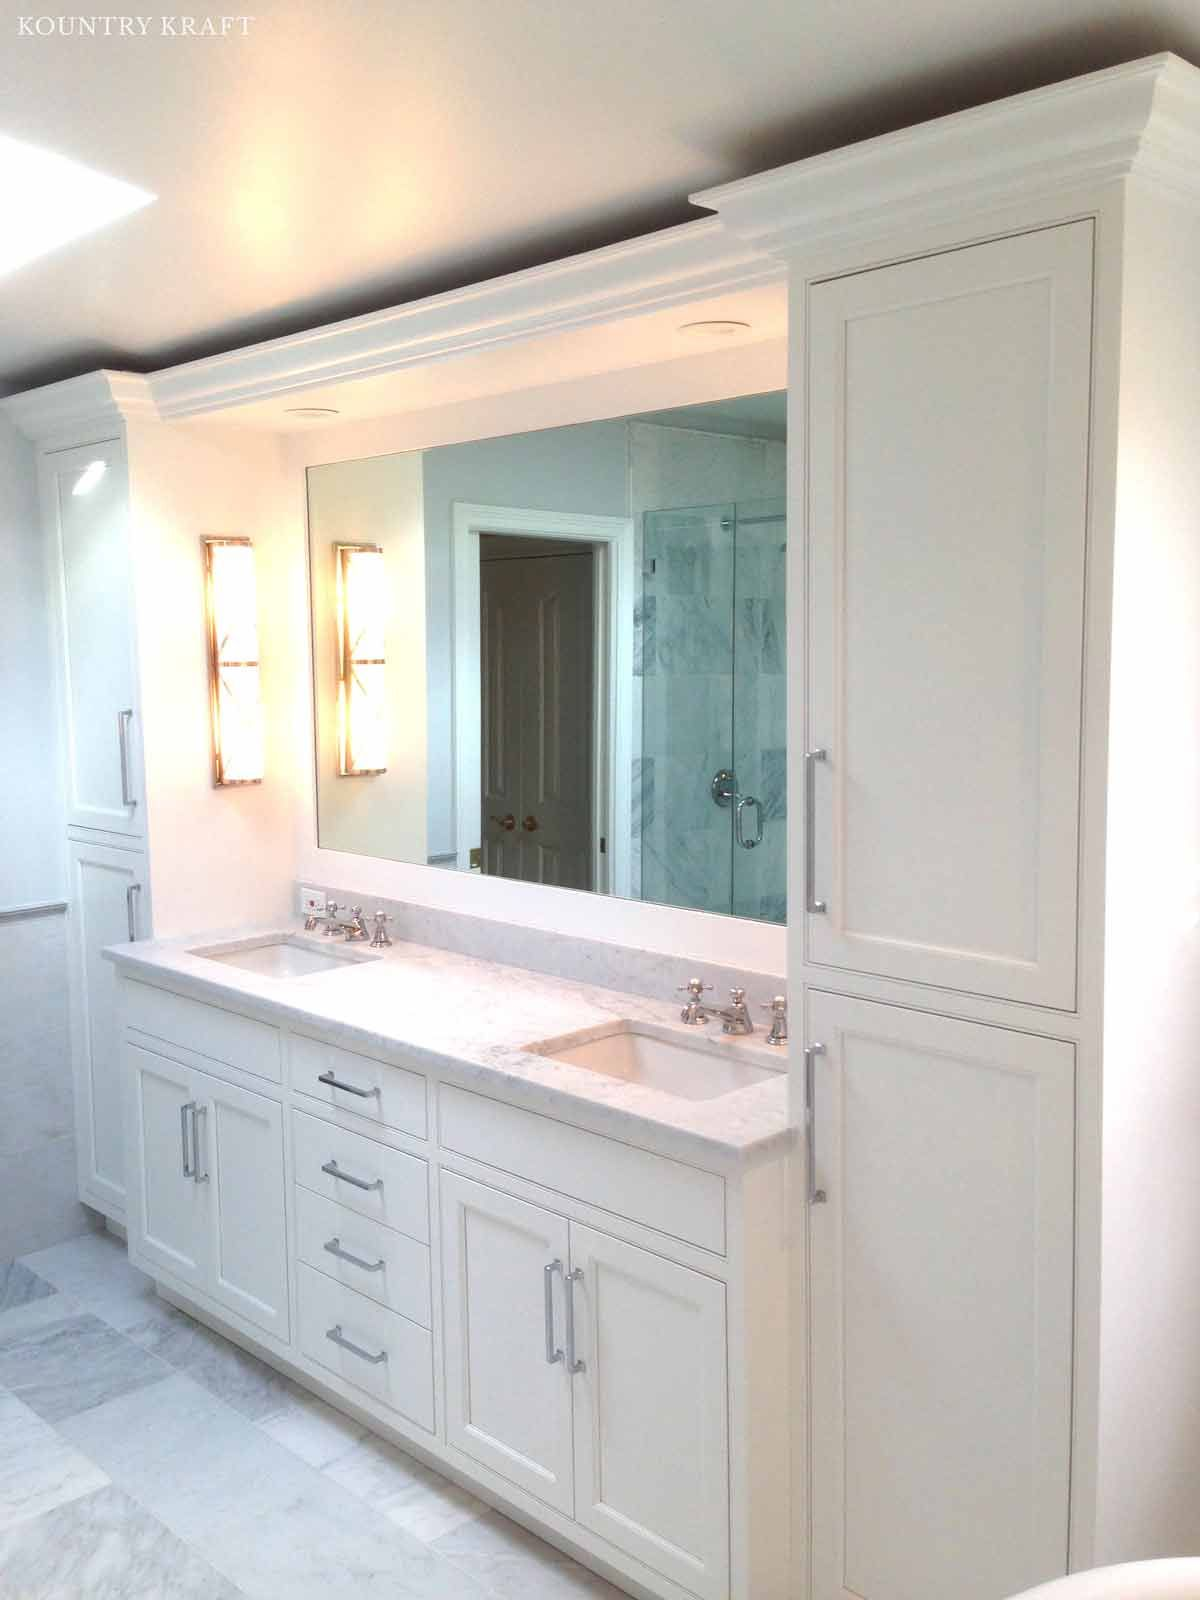 White Custom Cabinetry New Canaan Ct Https Www Kountrykraft Com Photo Gallery White Custom Cab Custom Bathroom Vanity Unique Bathroom Vanity Custom Bathroom